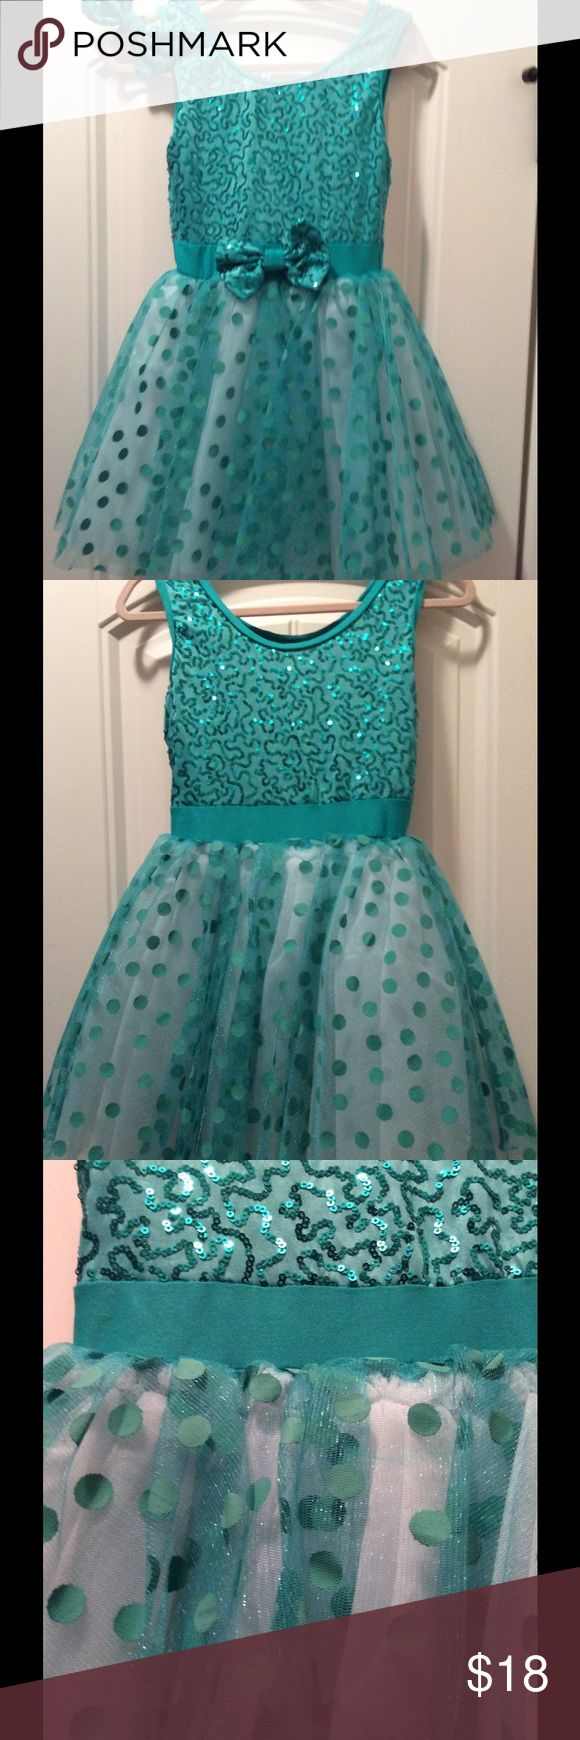 Girls dance costume 👗👗👗 Beautiful Weissman teal girls dance costume with matching hair bow!!!!👗👗👗Only wore twice---great condition!!! Weissman Costumes Dance